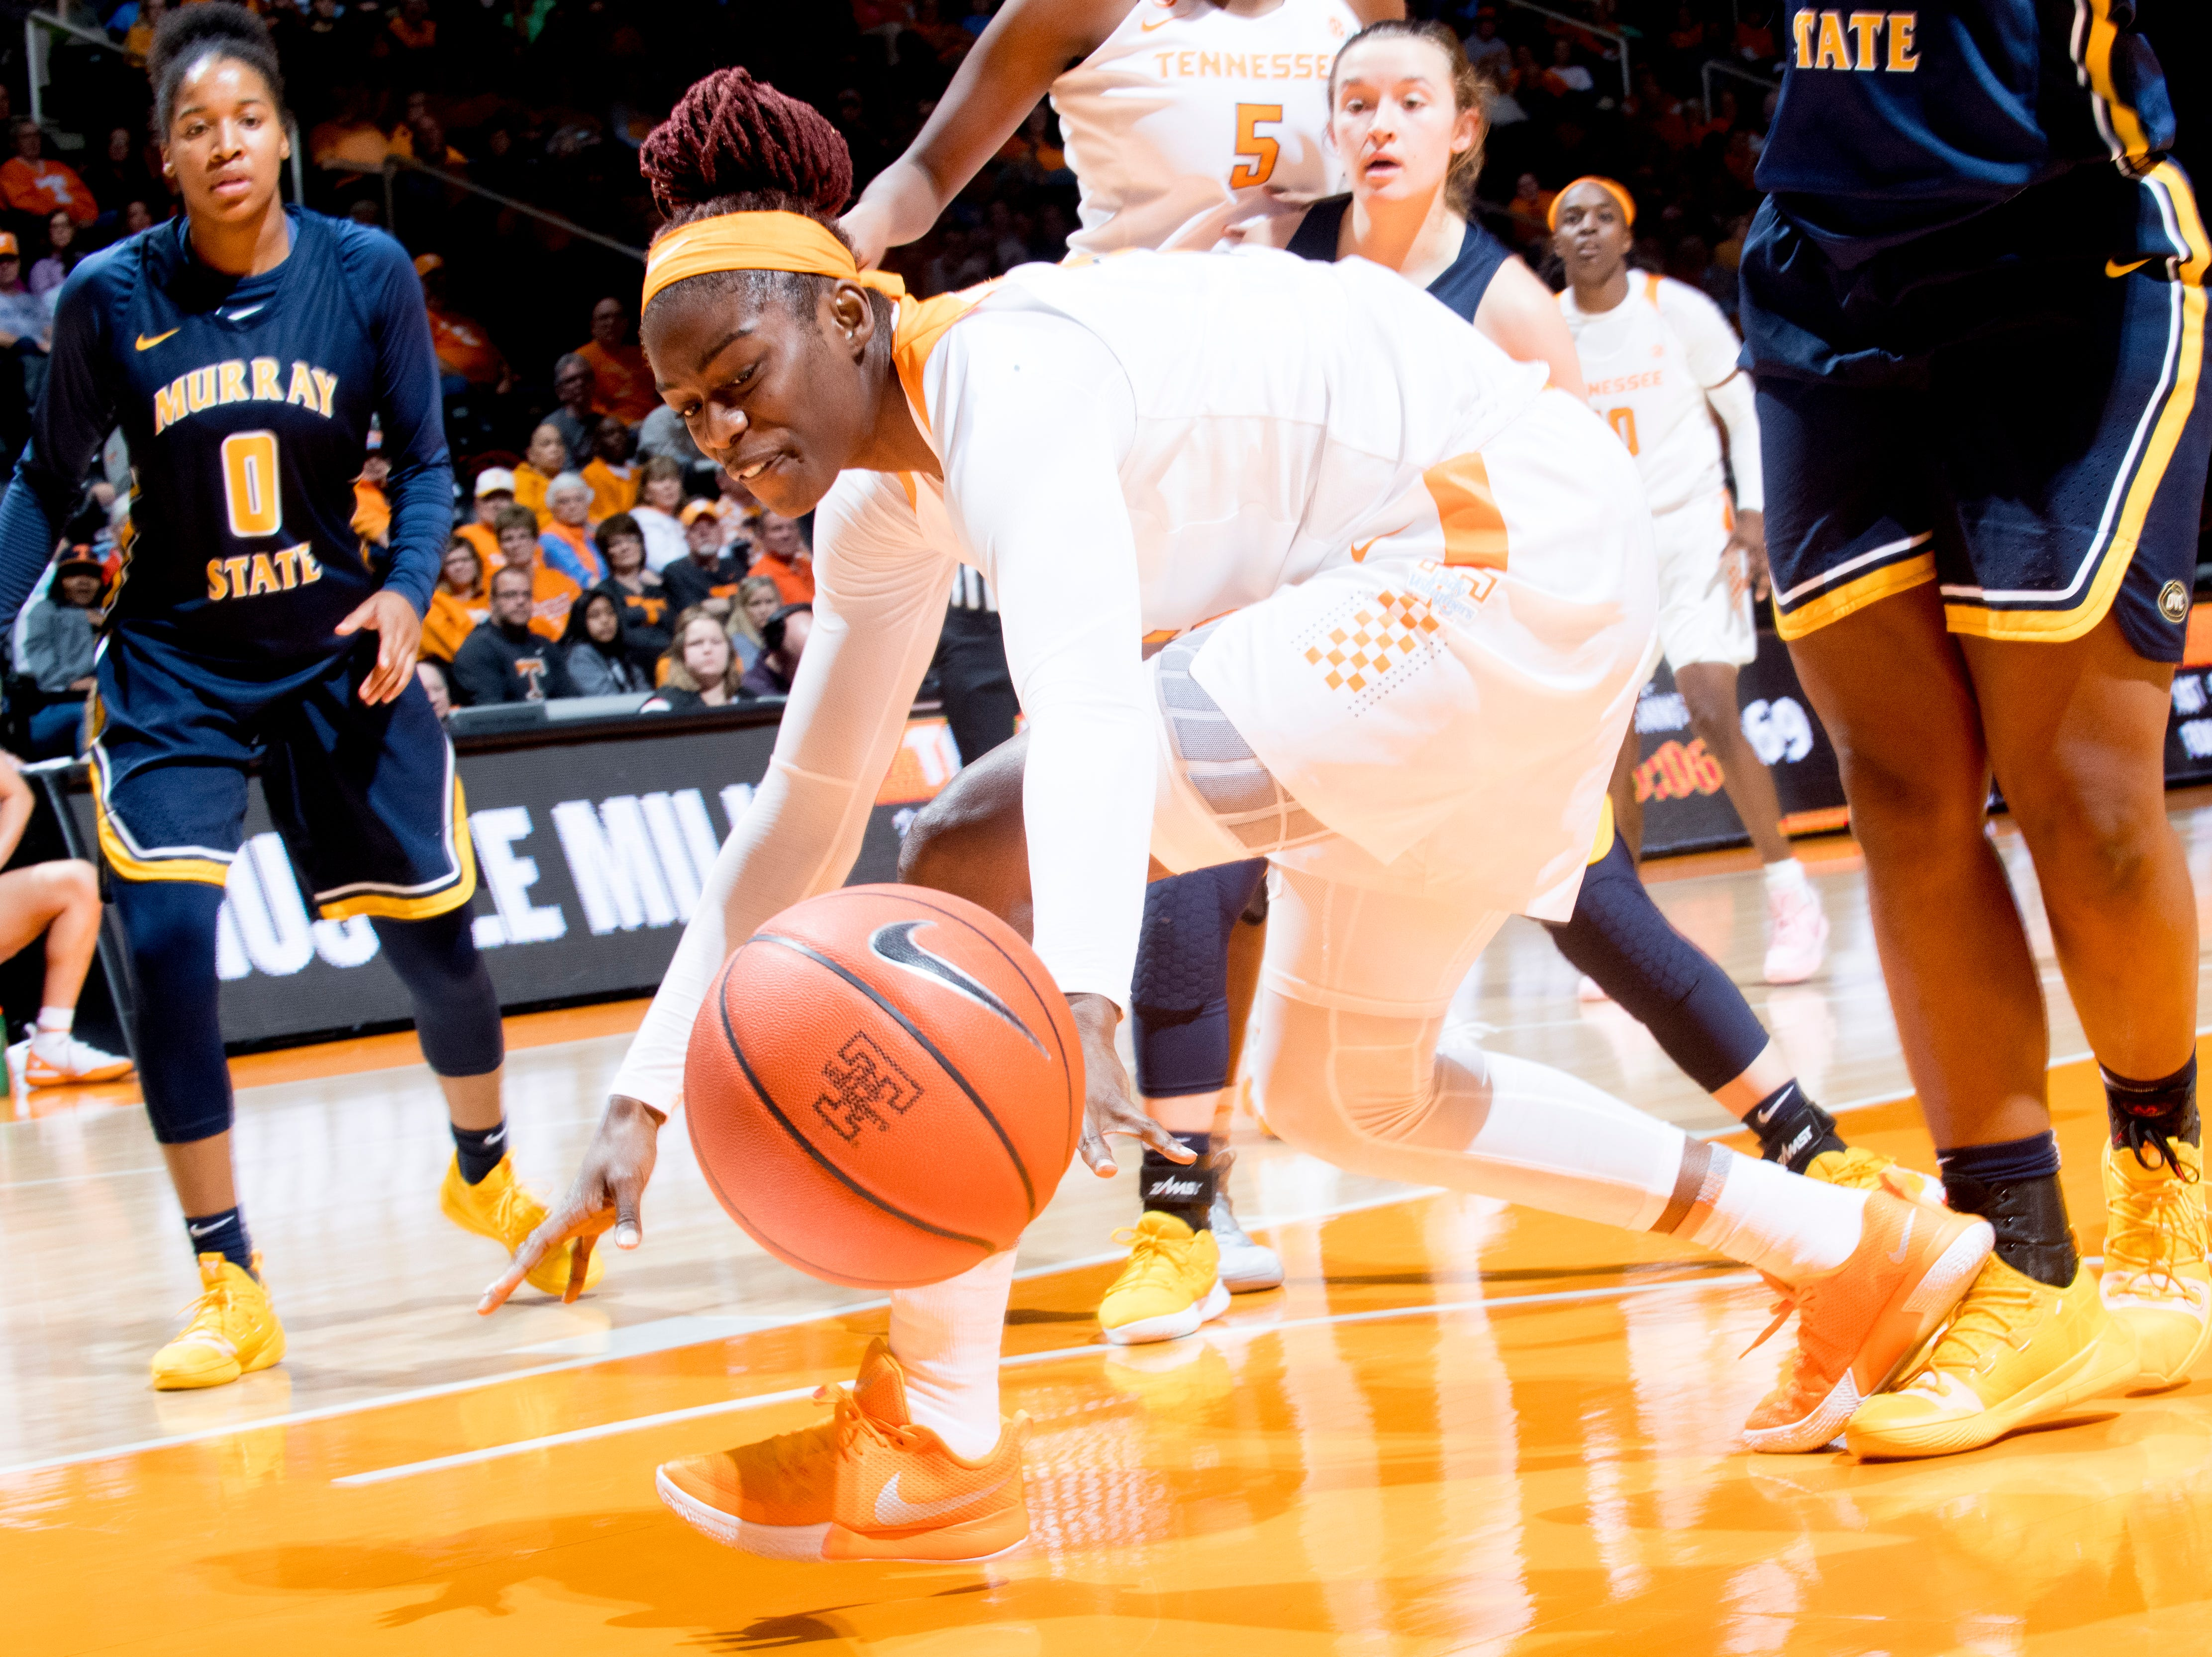 Tennessee forward Cheridene Green (15) loses the ball during a game between the Tennessee Lady Vols and Murray State at Thompson-Boling Arena in Knoxville, Tennessee on Friday, December 28, 2018.